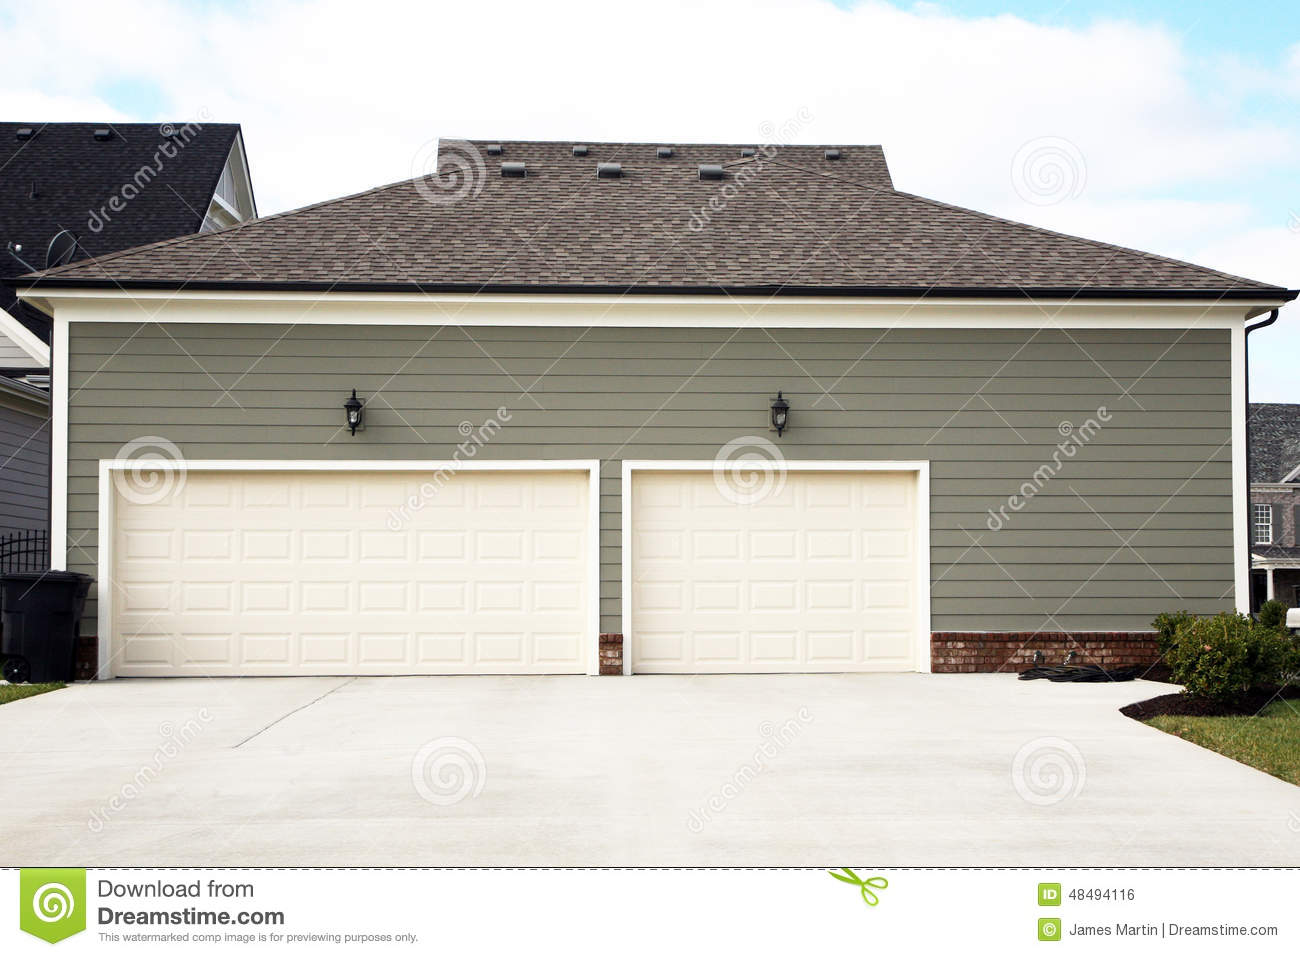 Four car garage plans house plans House plans with 4 car attached garage